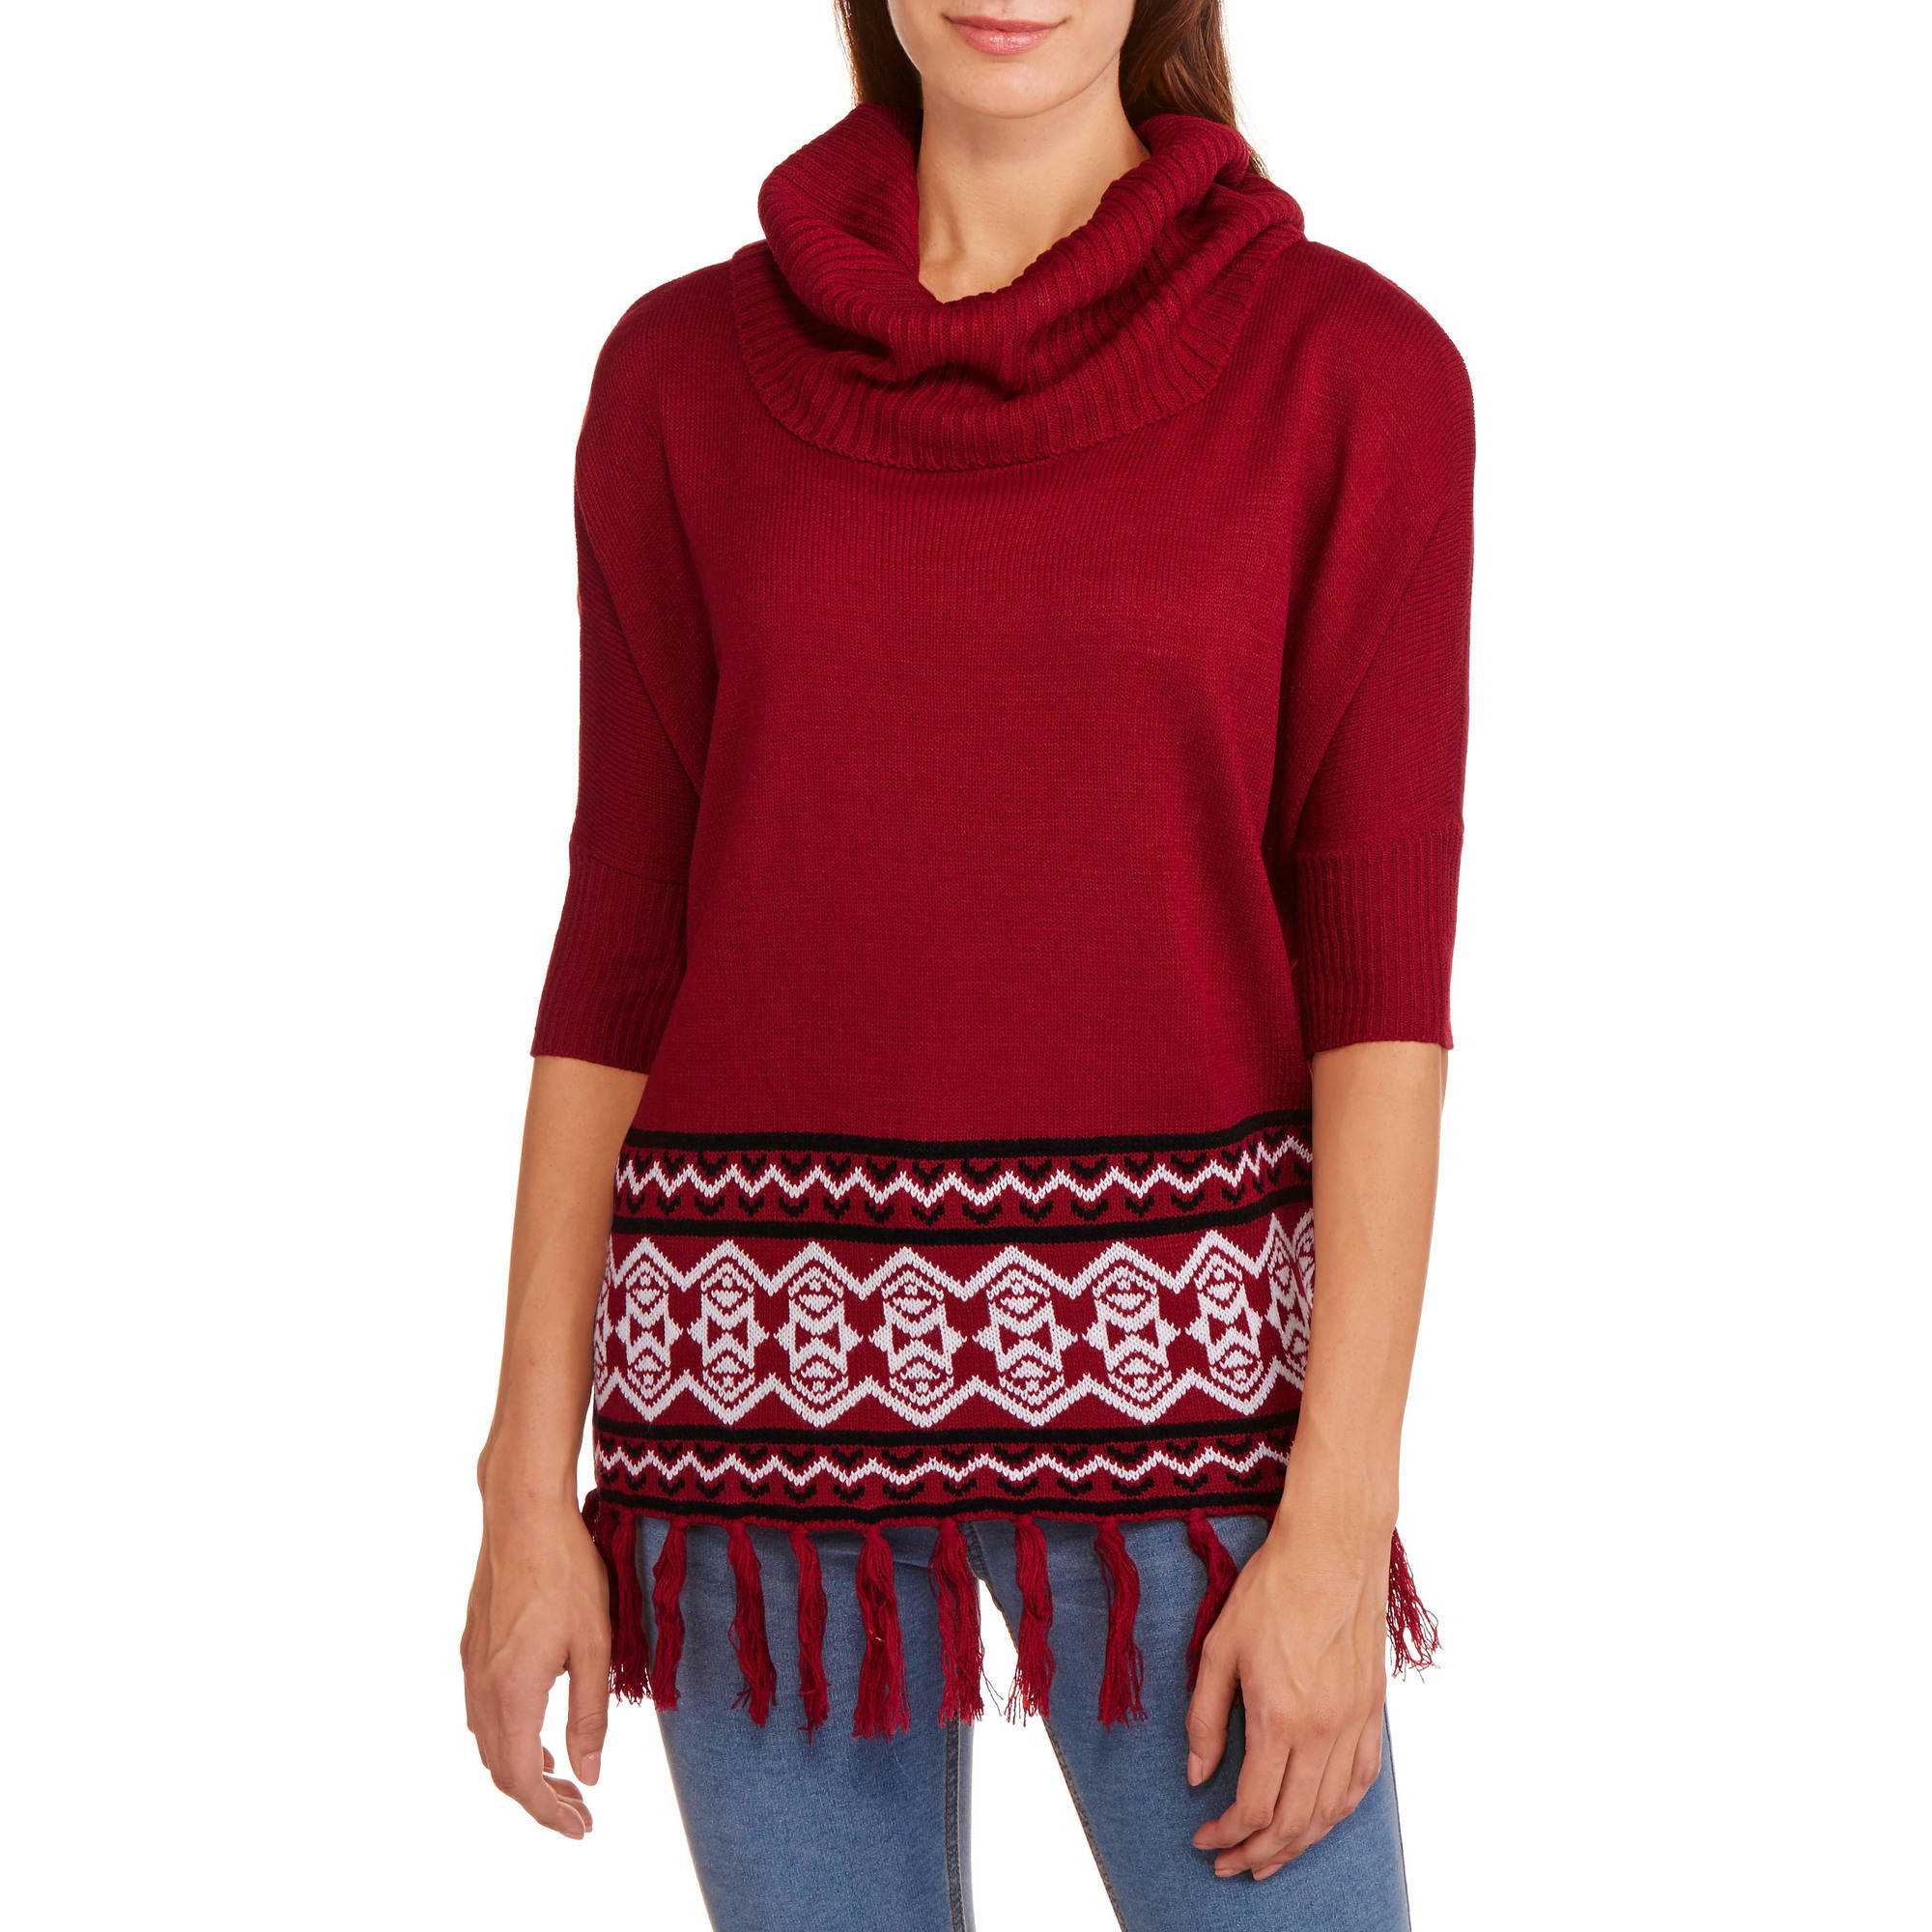 Allison Brittney Women's Dolman Fringe Cowl Neck Sweater